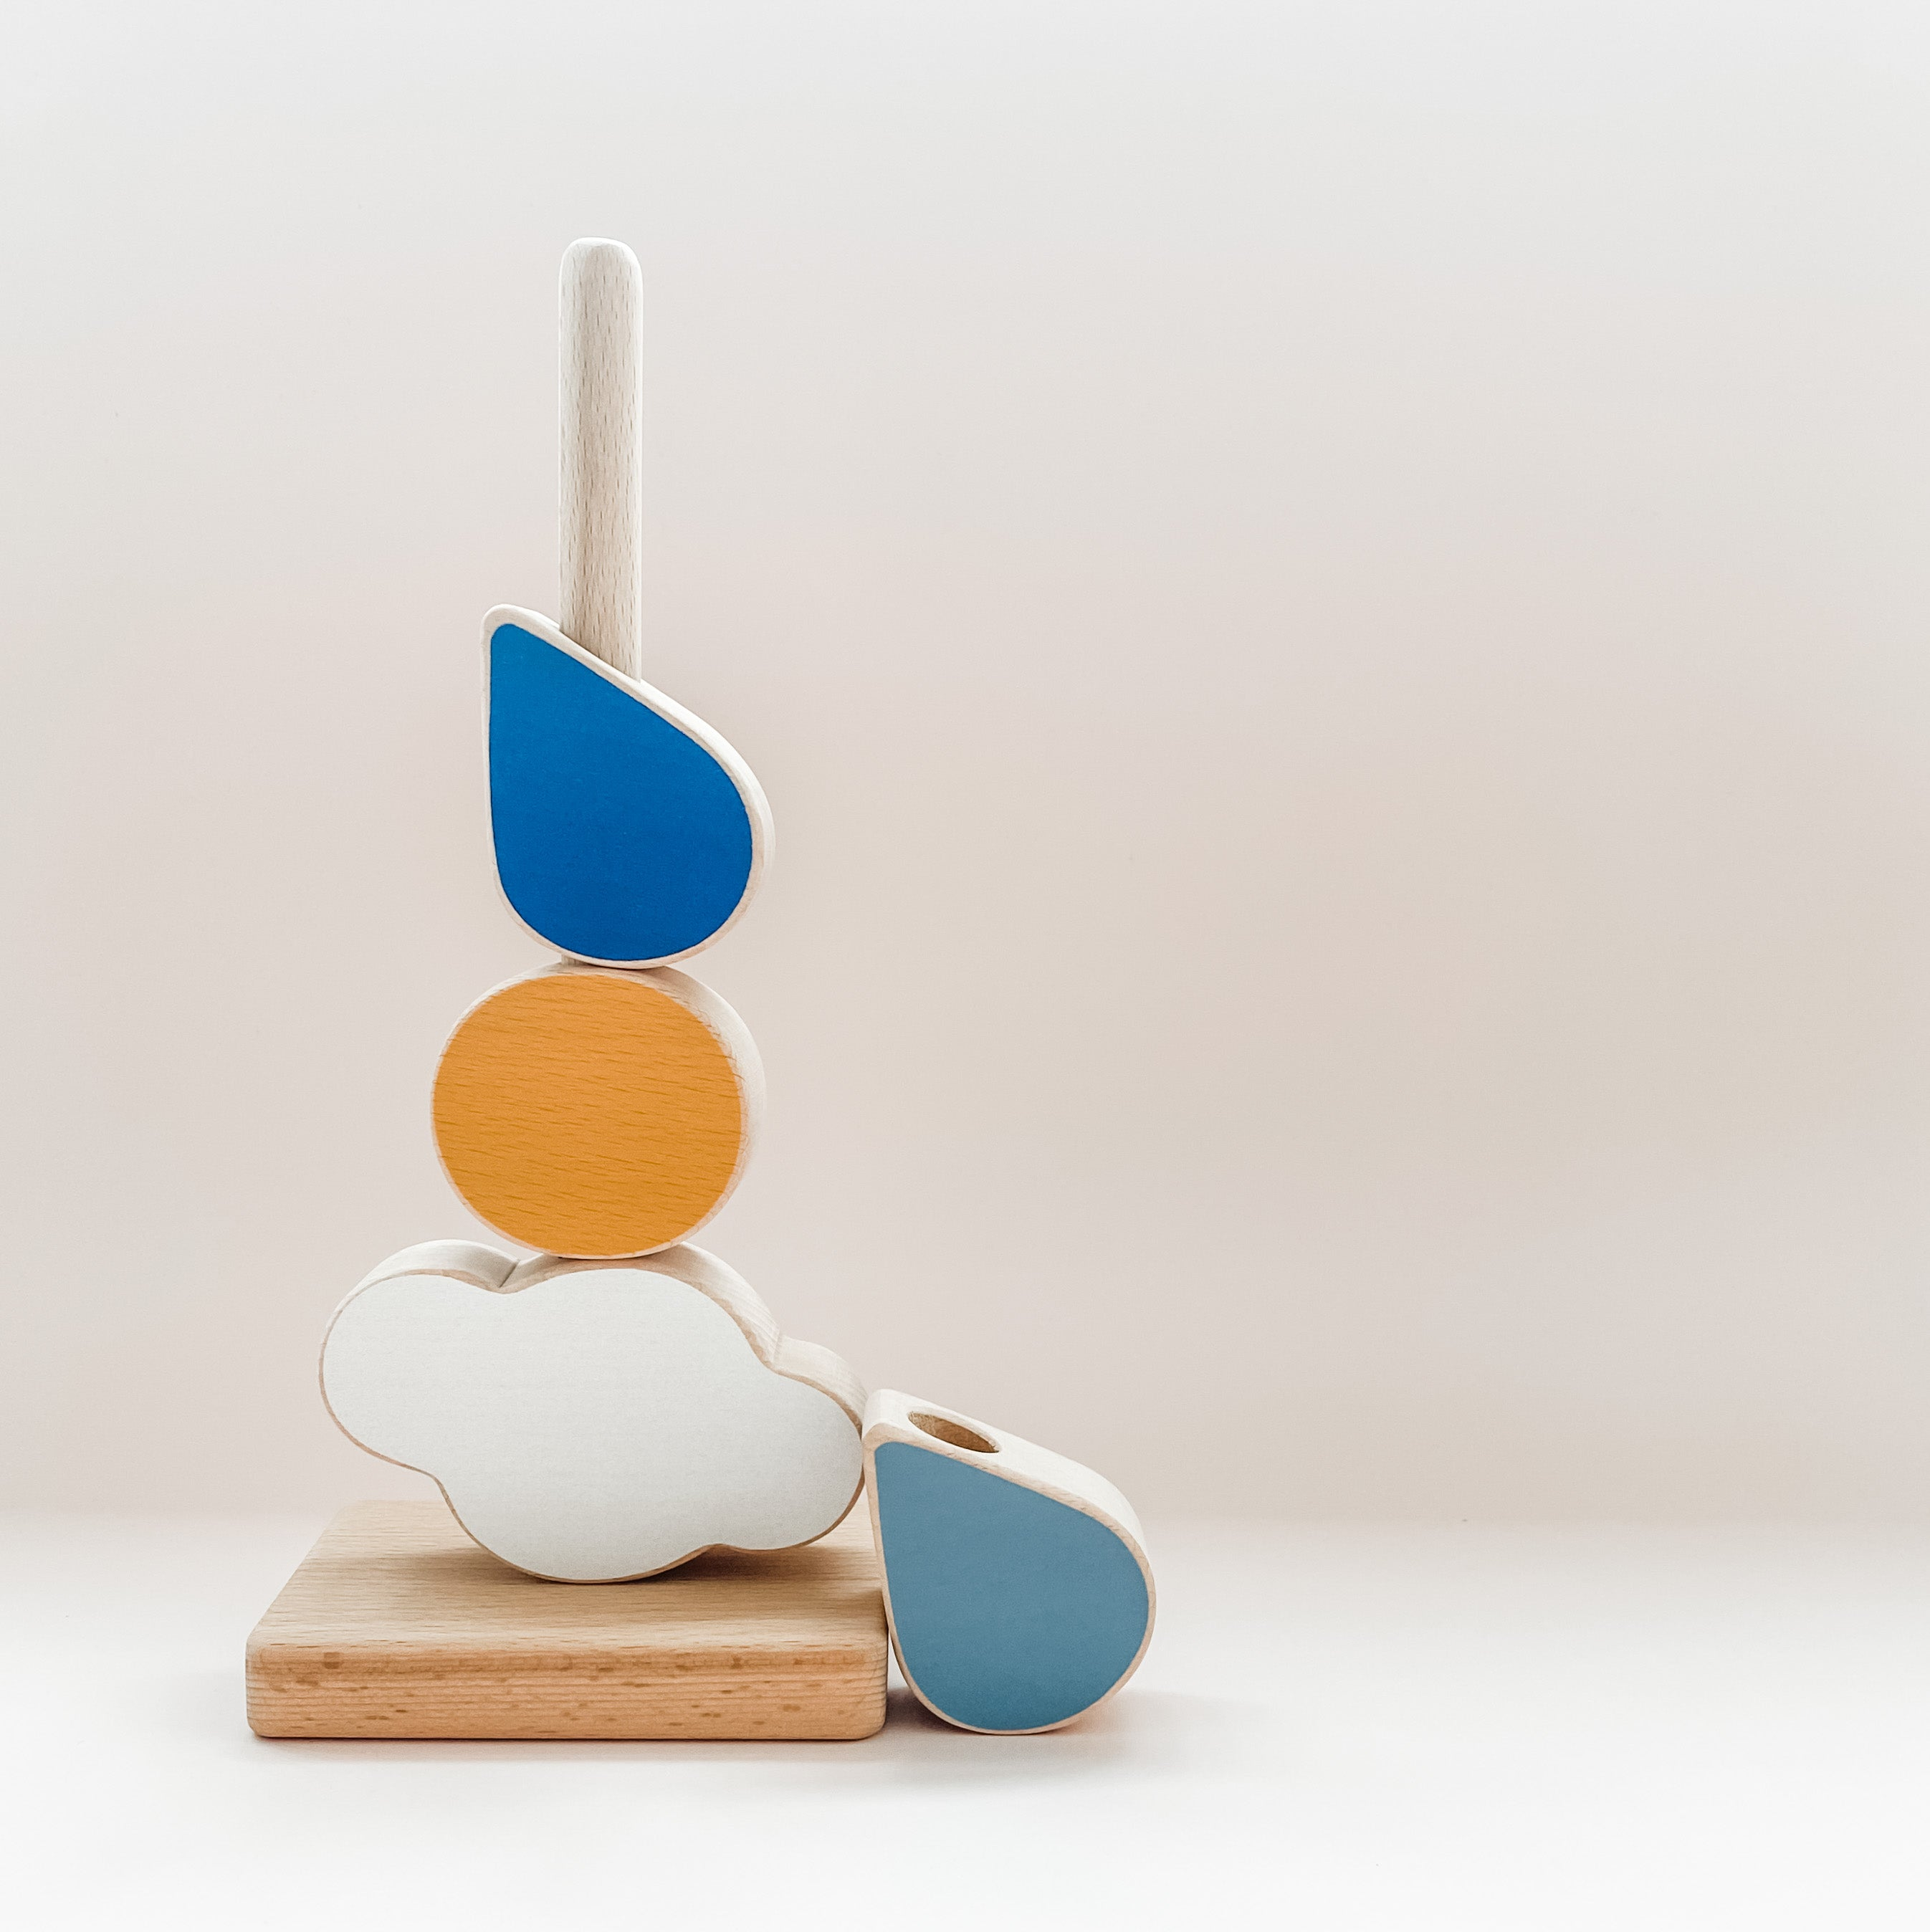 The Wandering Workshop 'Catch the Cloud' Wooden Stacking Toy